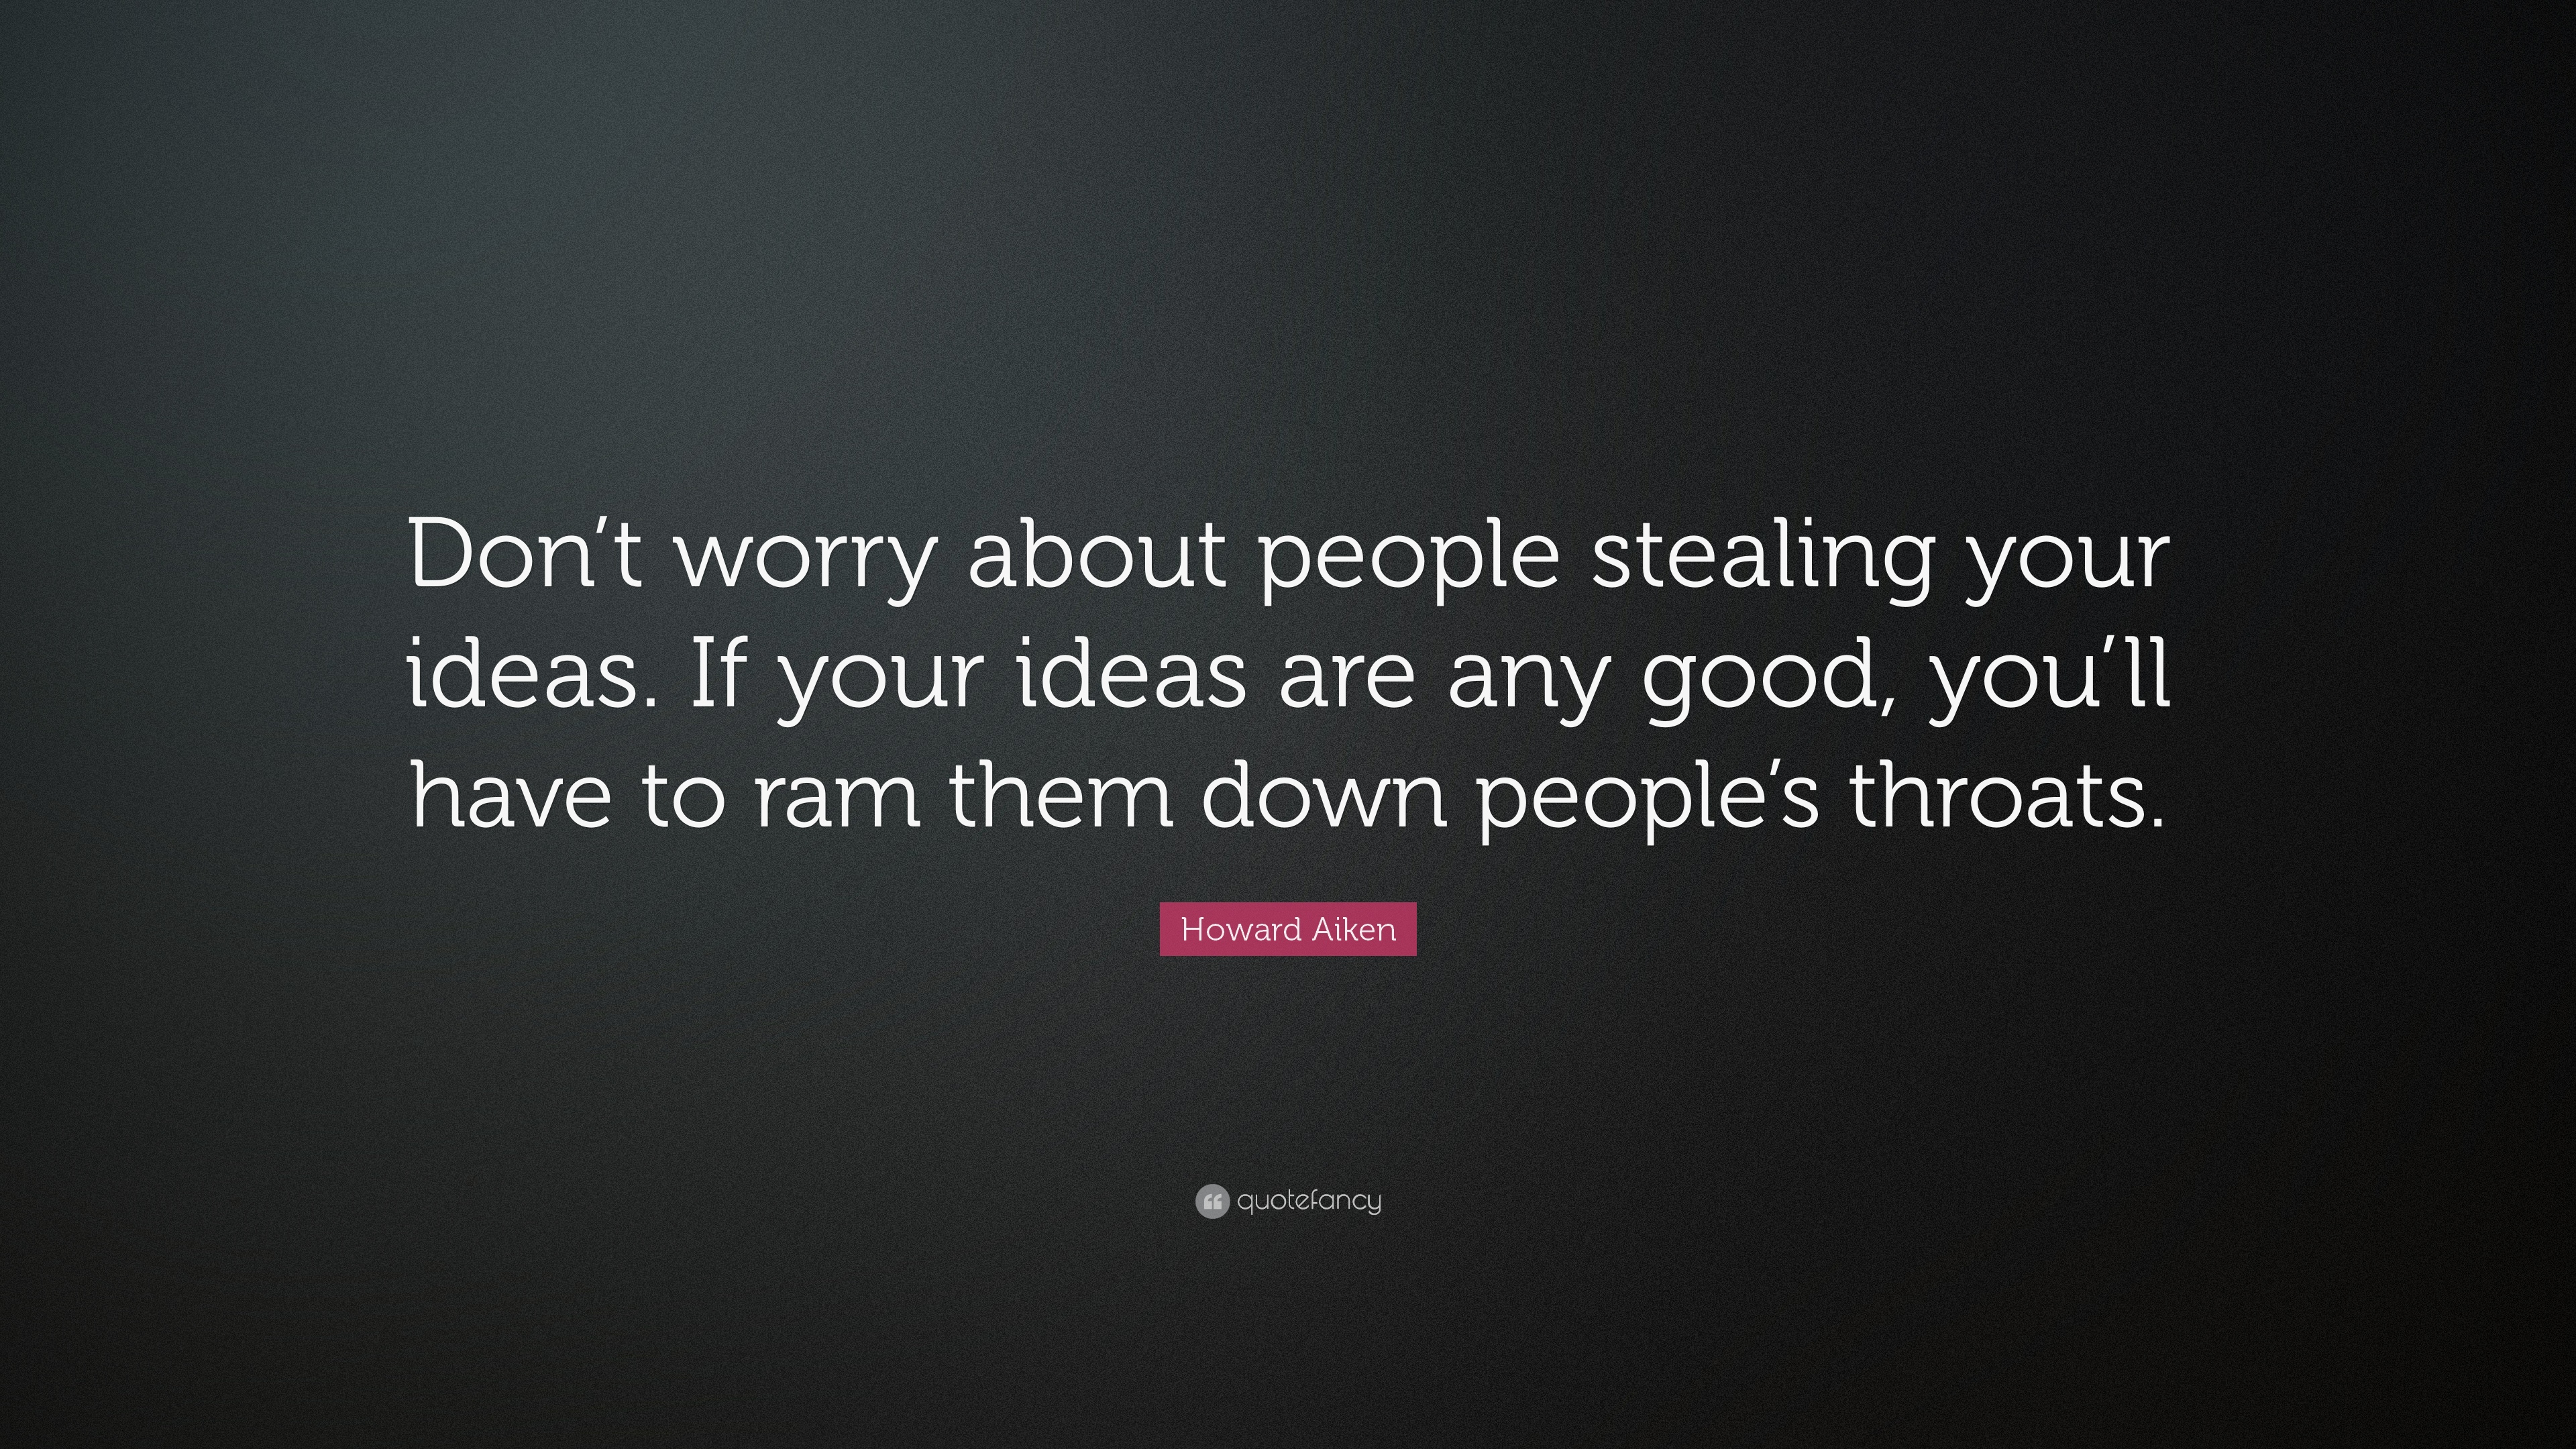 howard aiken quote don t worry about people stealing your ideas